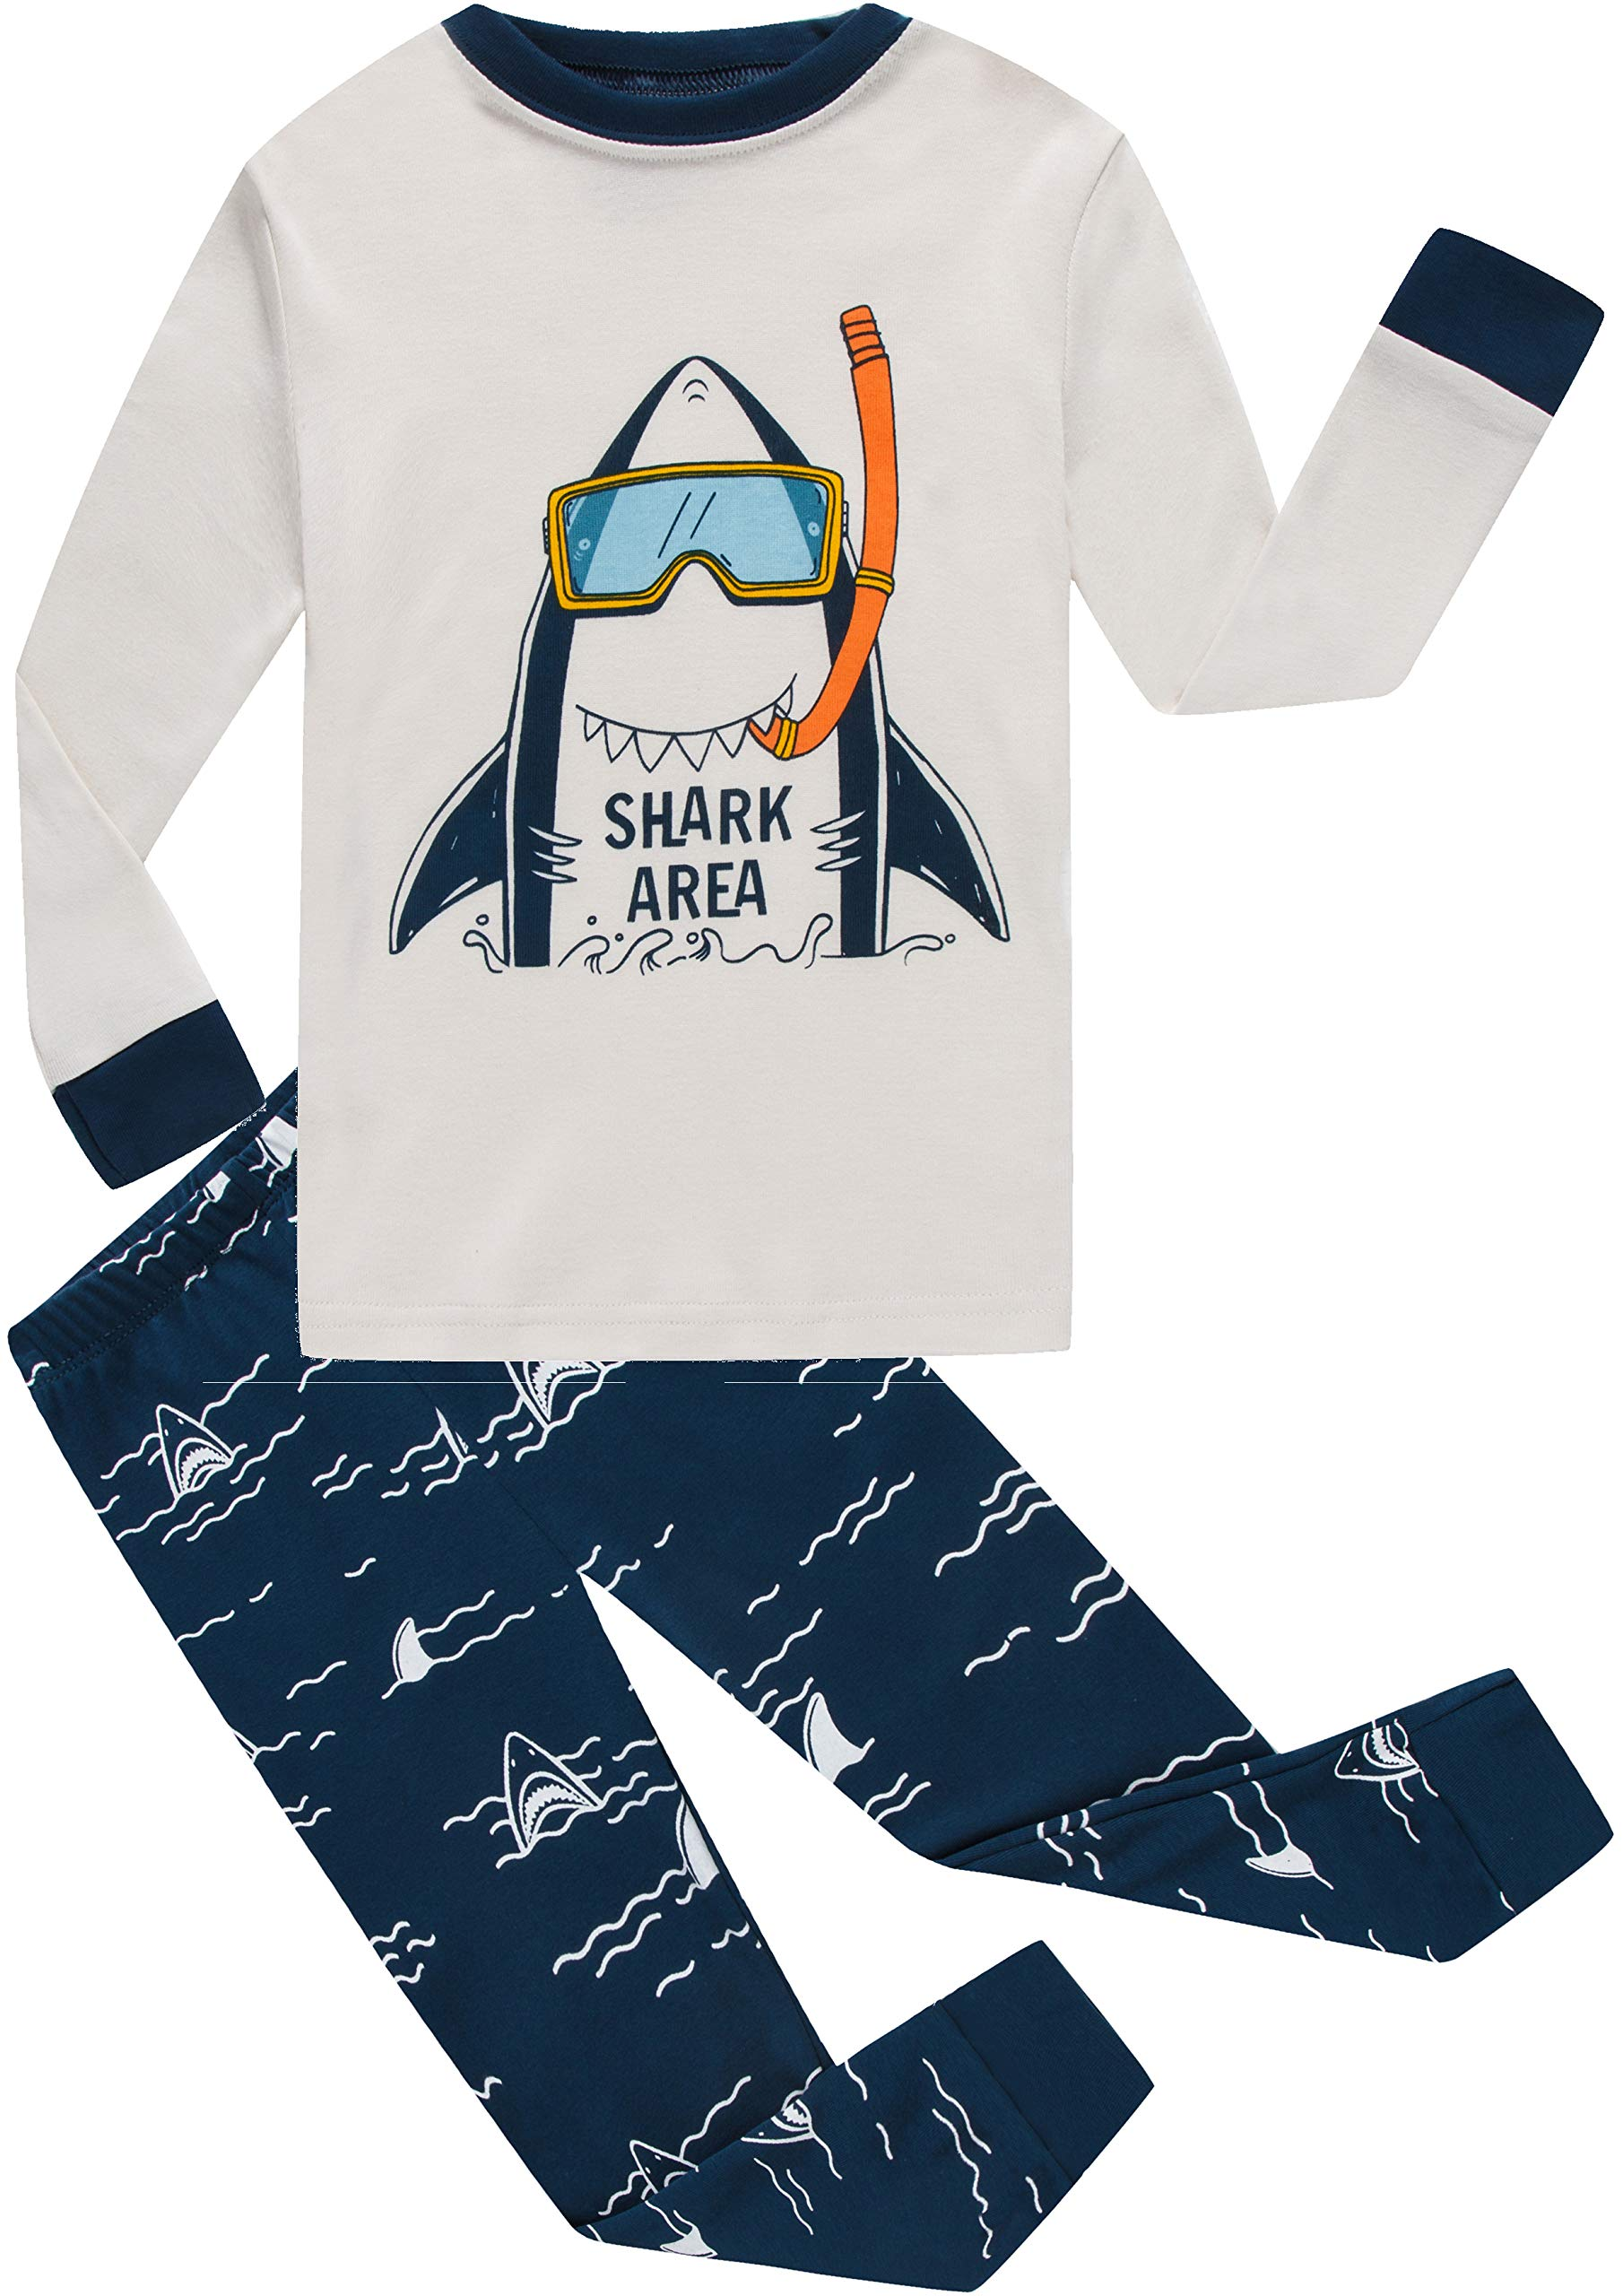 Boys Shark Pajamas Little Boys Toddler PJs Clothes Shirts & Pants Kids Sleepwear Size 5 by shelry (Image #1)